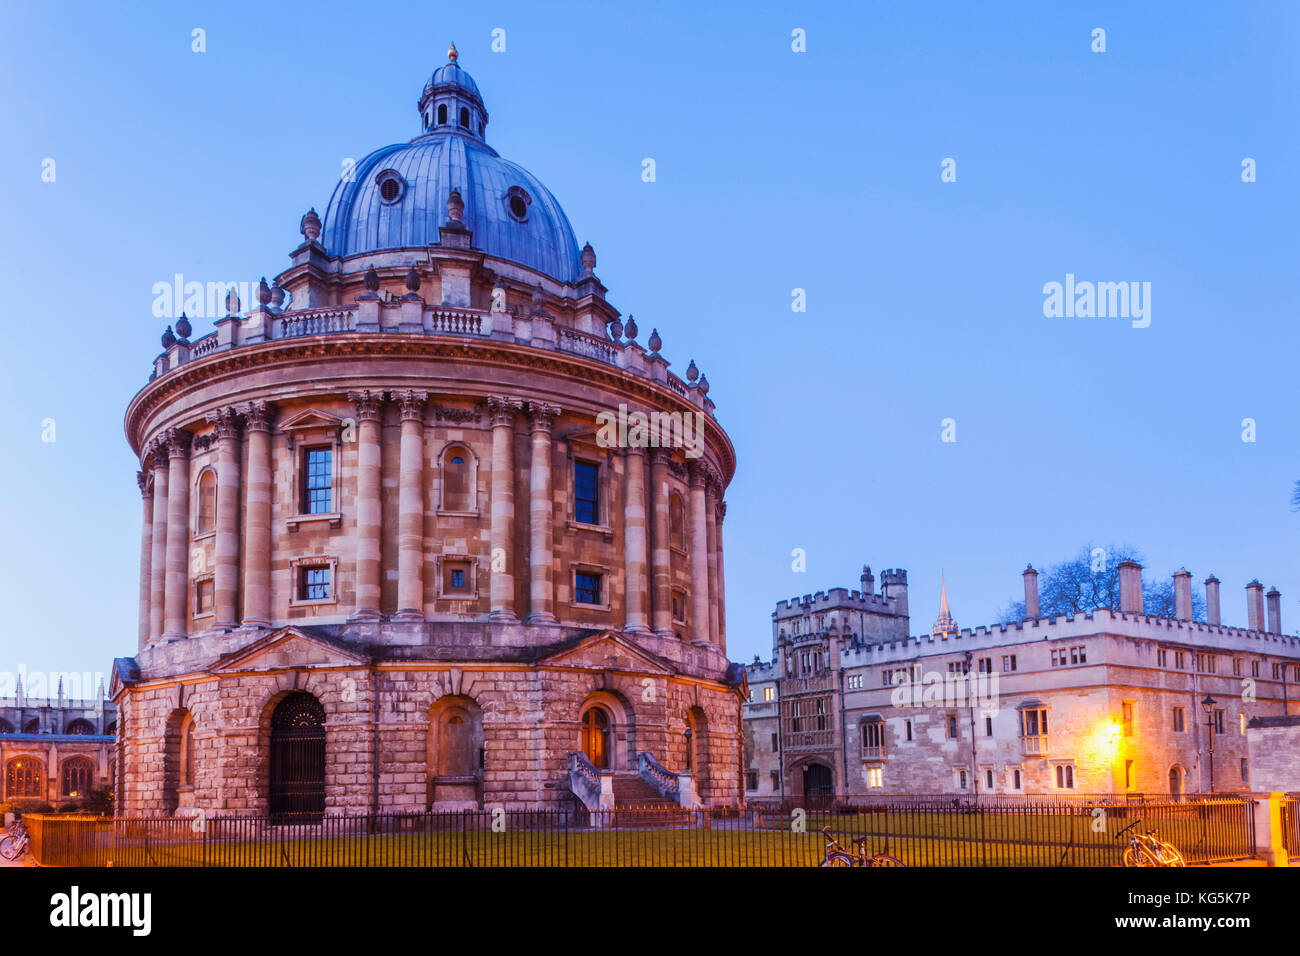 England, Oxfordshire, Oxford, Oxford University, Bodleian Library, Radcliiffe Camera - Stock Image